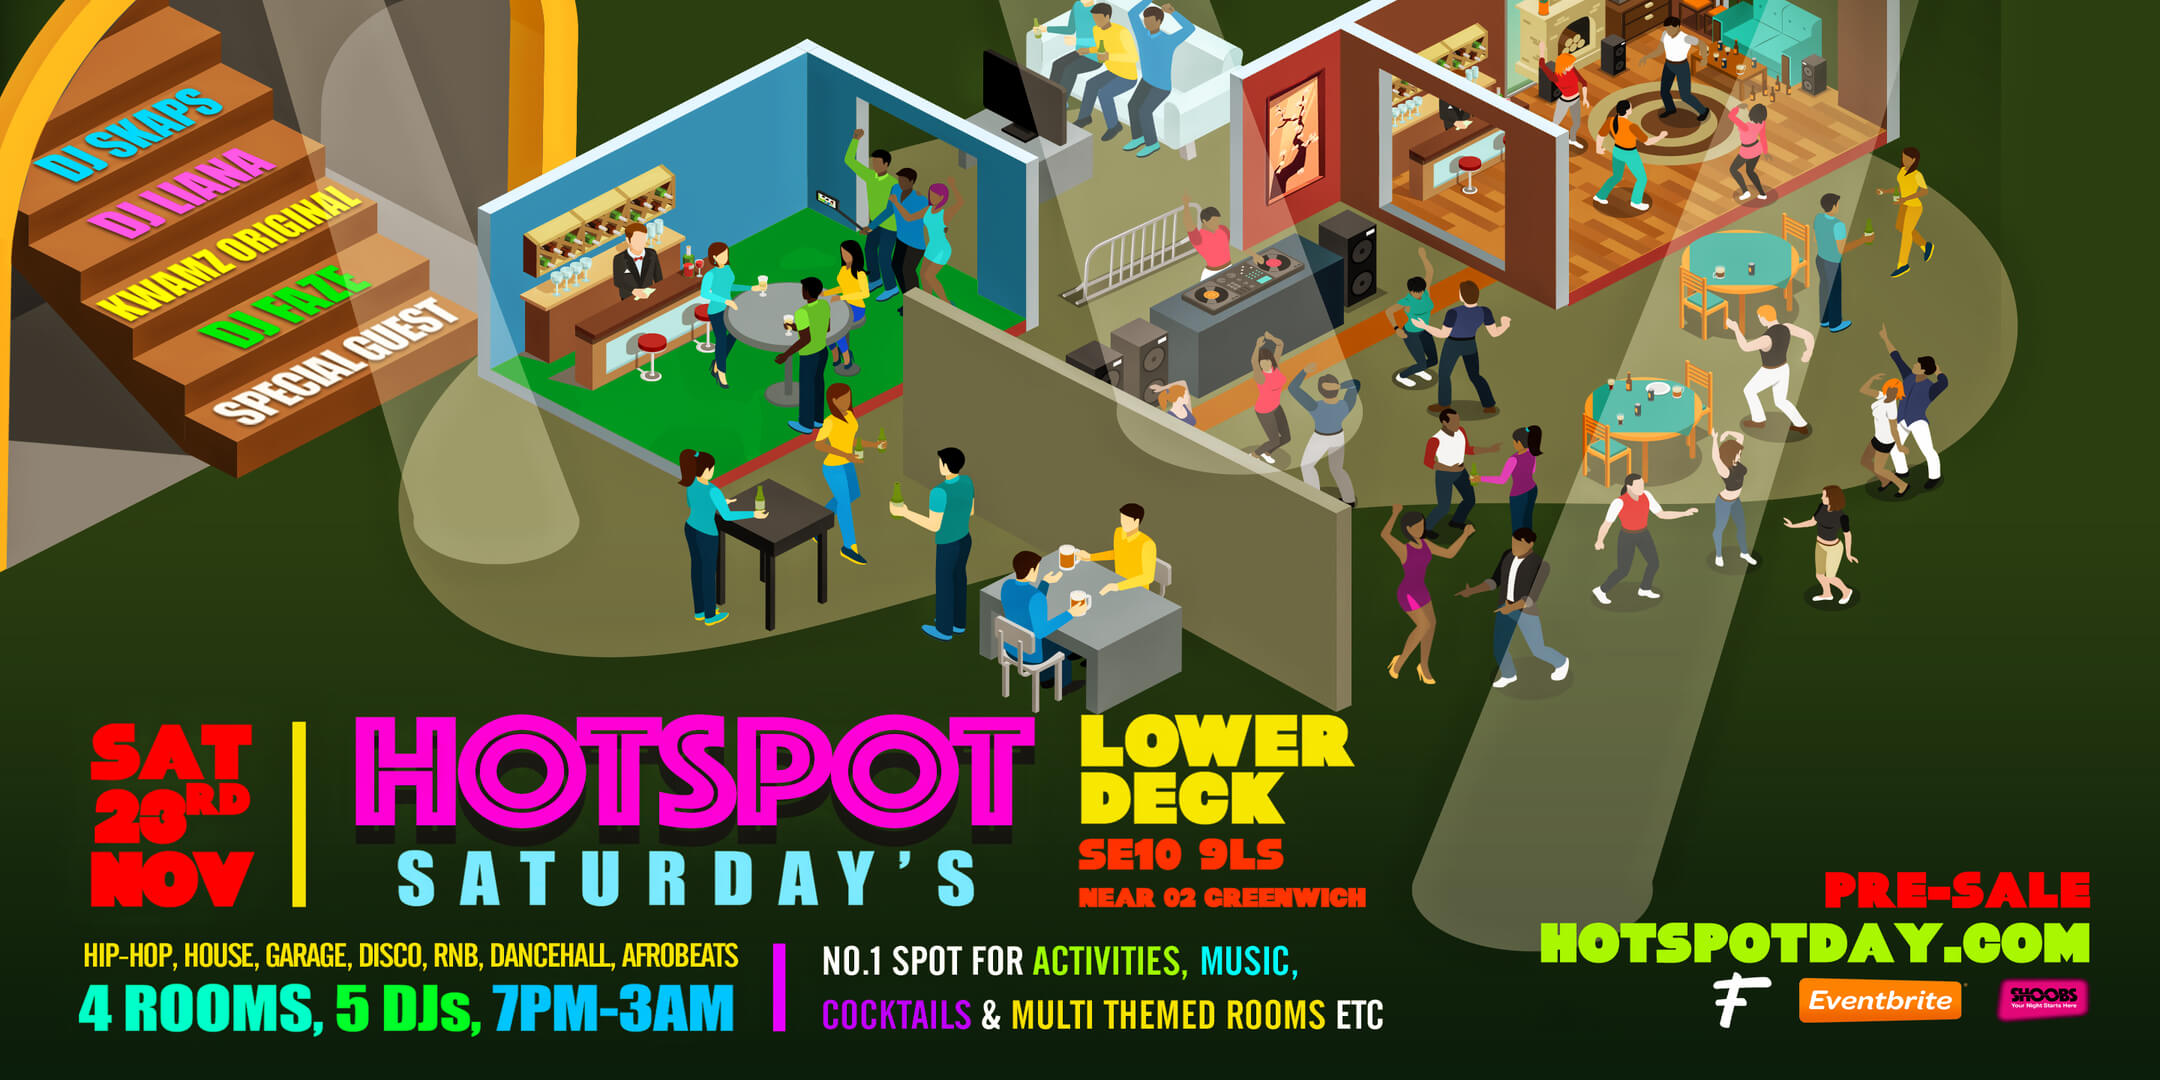 Saturday Hotspot – No. 1 Spot For Activities, Music, Cocktails & Multi Themed Rooms etc